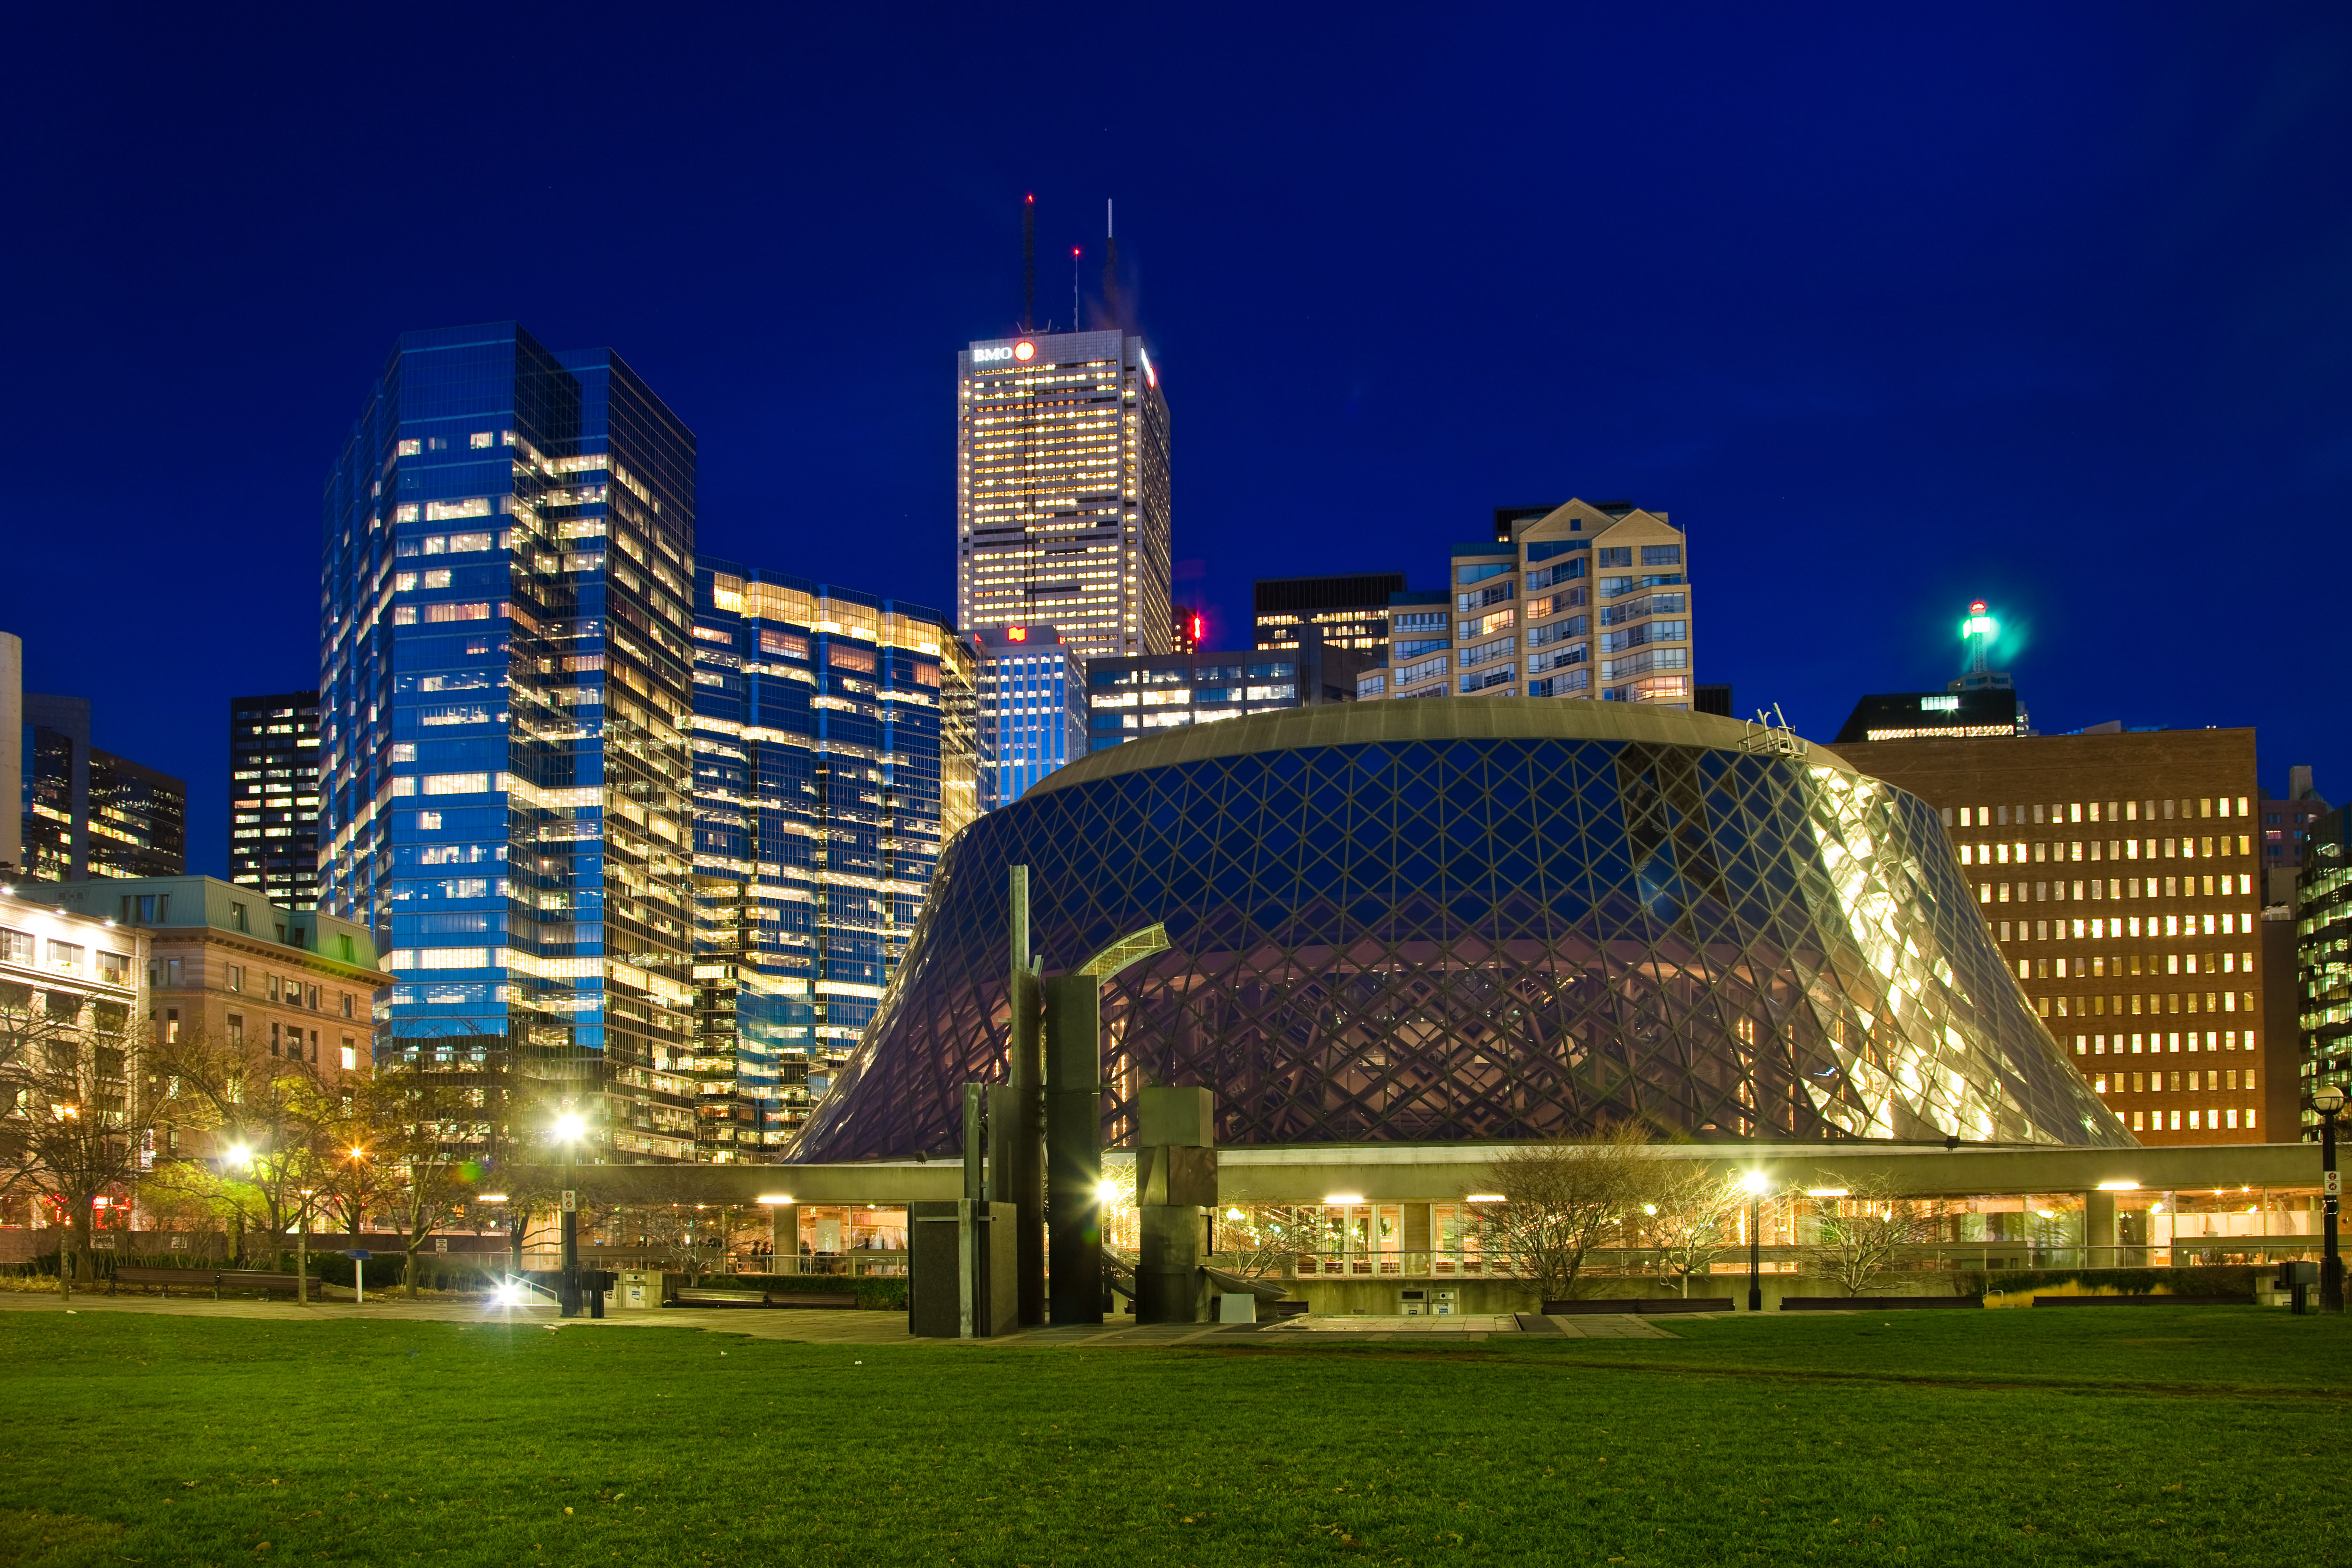 File:Roy Thomson Hall Toronto.jpg - Wikimedia Commons